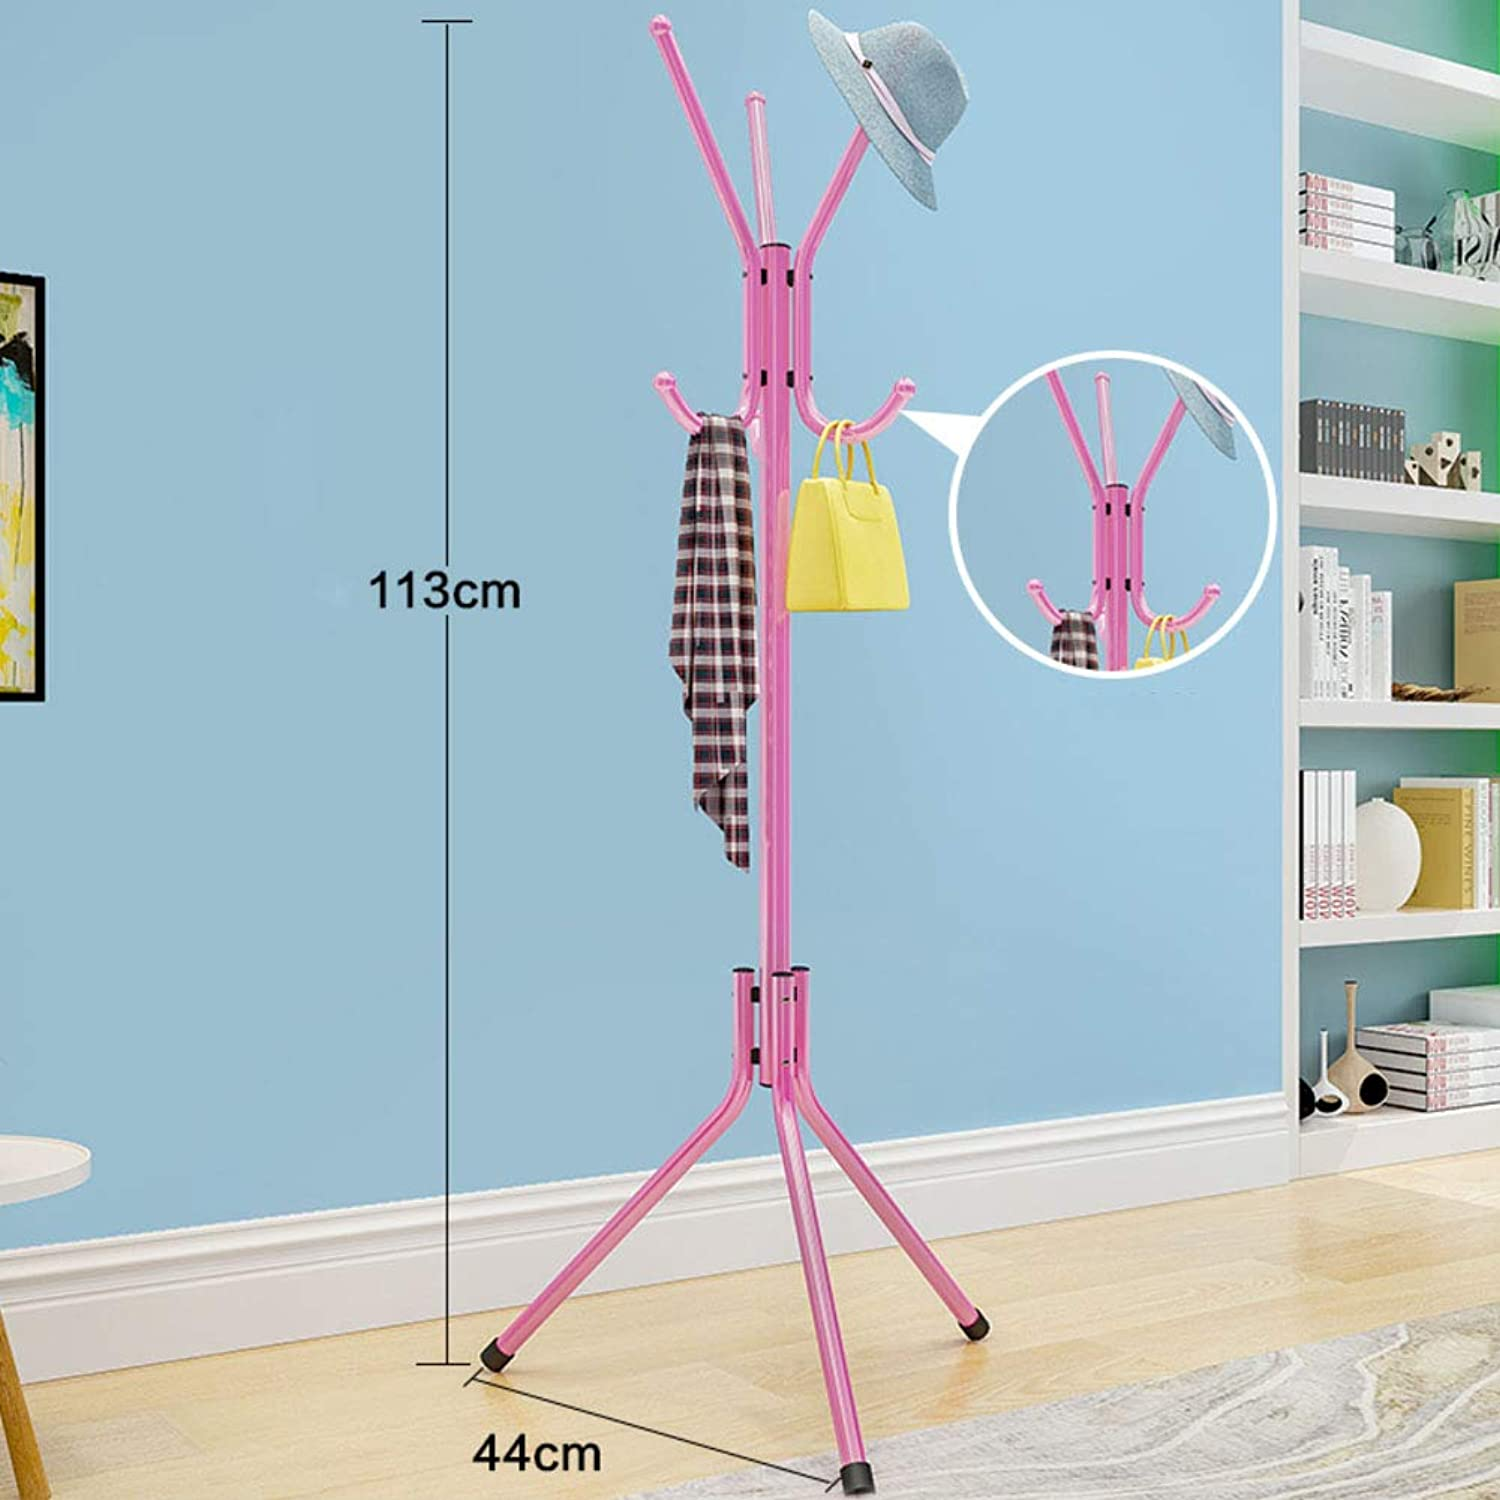 Simple Modern Coat Rack,Living Room Creativ Coat Rack Stand,Thicken Entryway Coat Tree for Jacket Purse Scarf Rack-A 44x113cm(17x44inch)